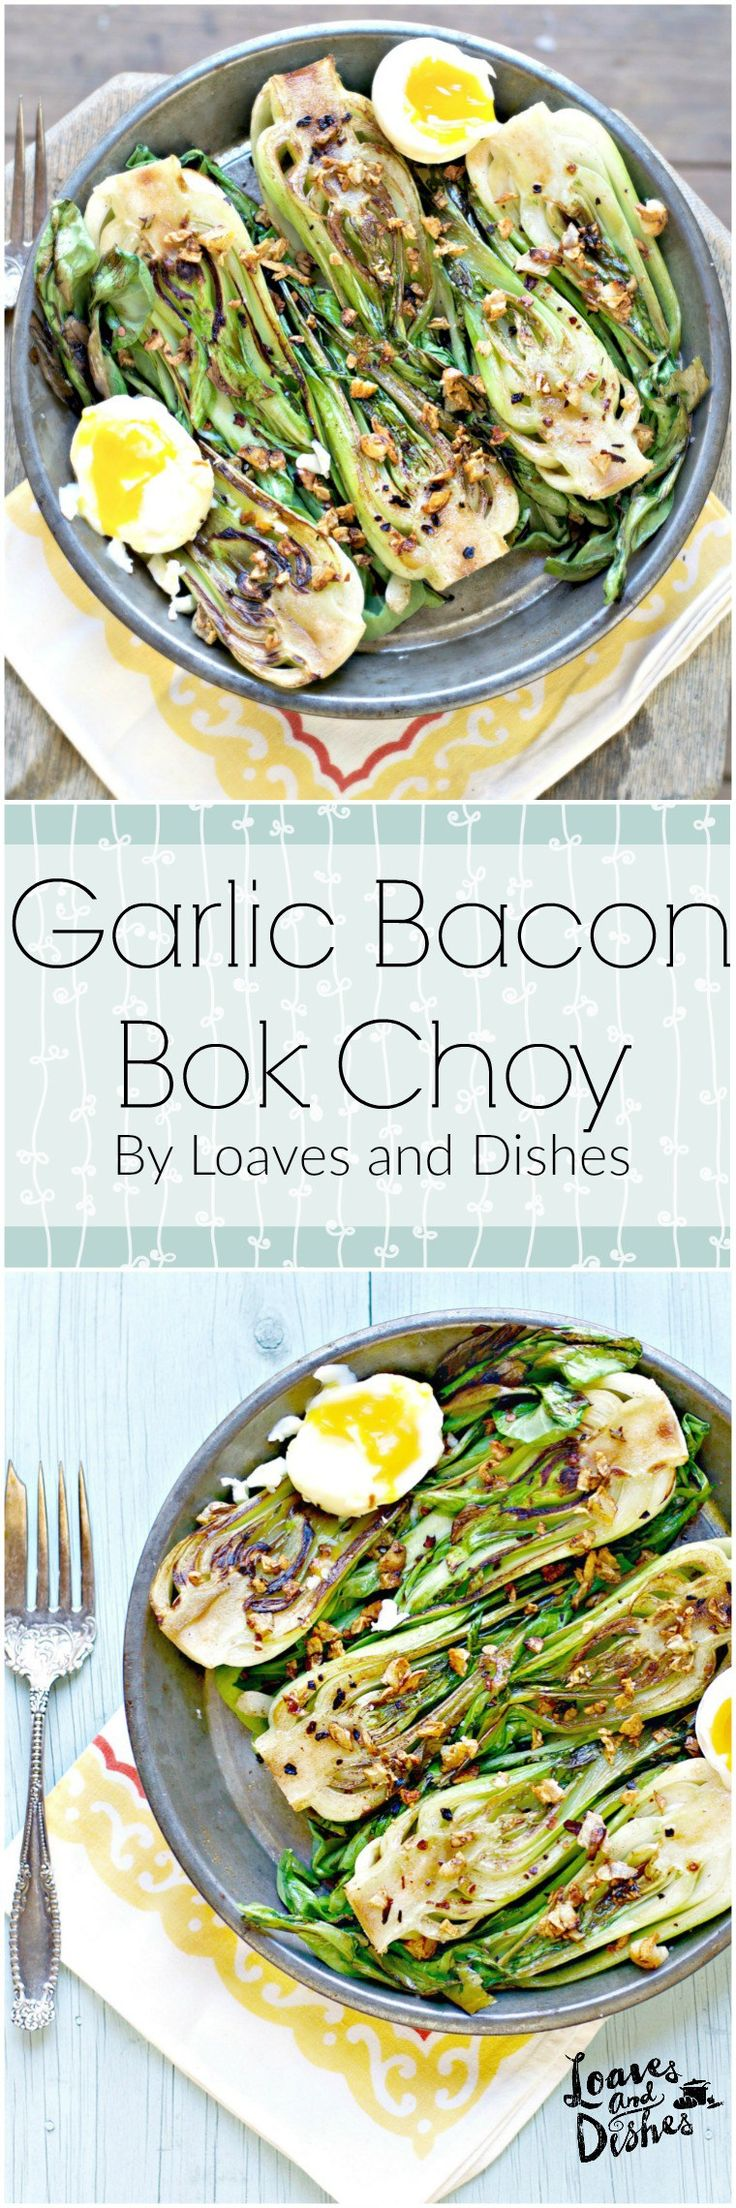 Easy 5 minute cooking time recipe, simple with easy ingredients. Tasty fresh meal made with Chinese Cabbage and a Haiku is included! You can't ask for more!